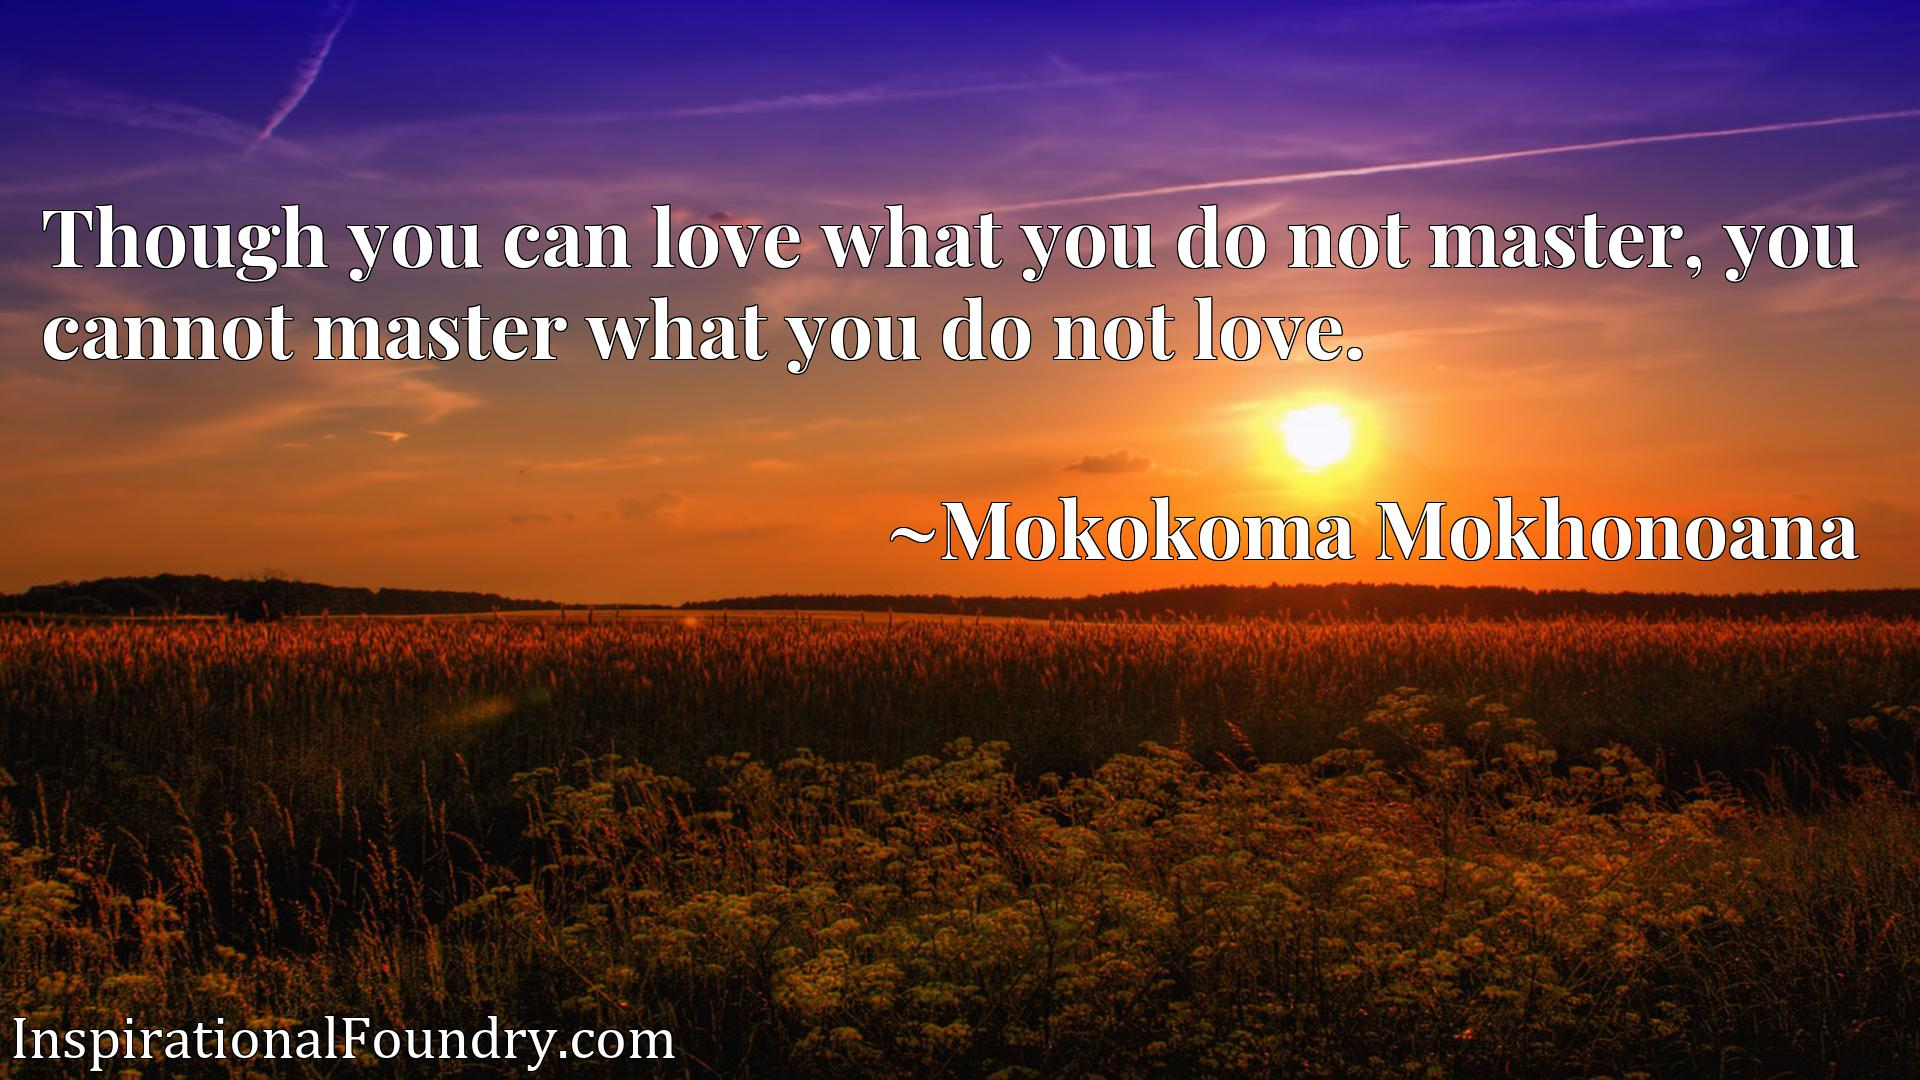 Though you can love what you do not master, you cannot master what you do not love.